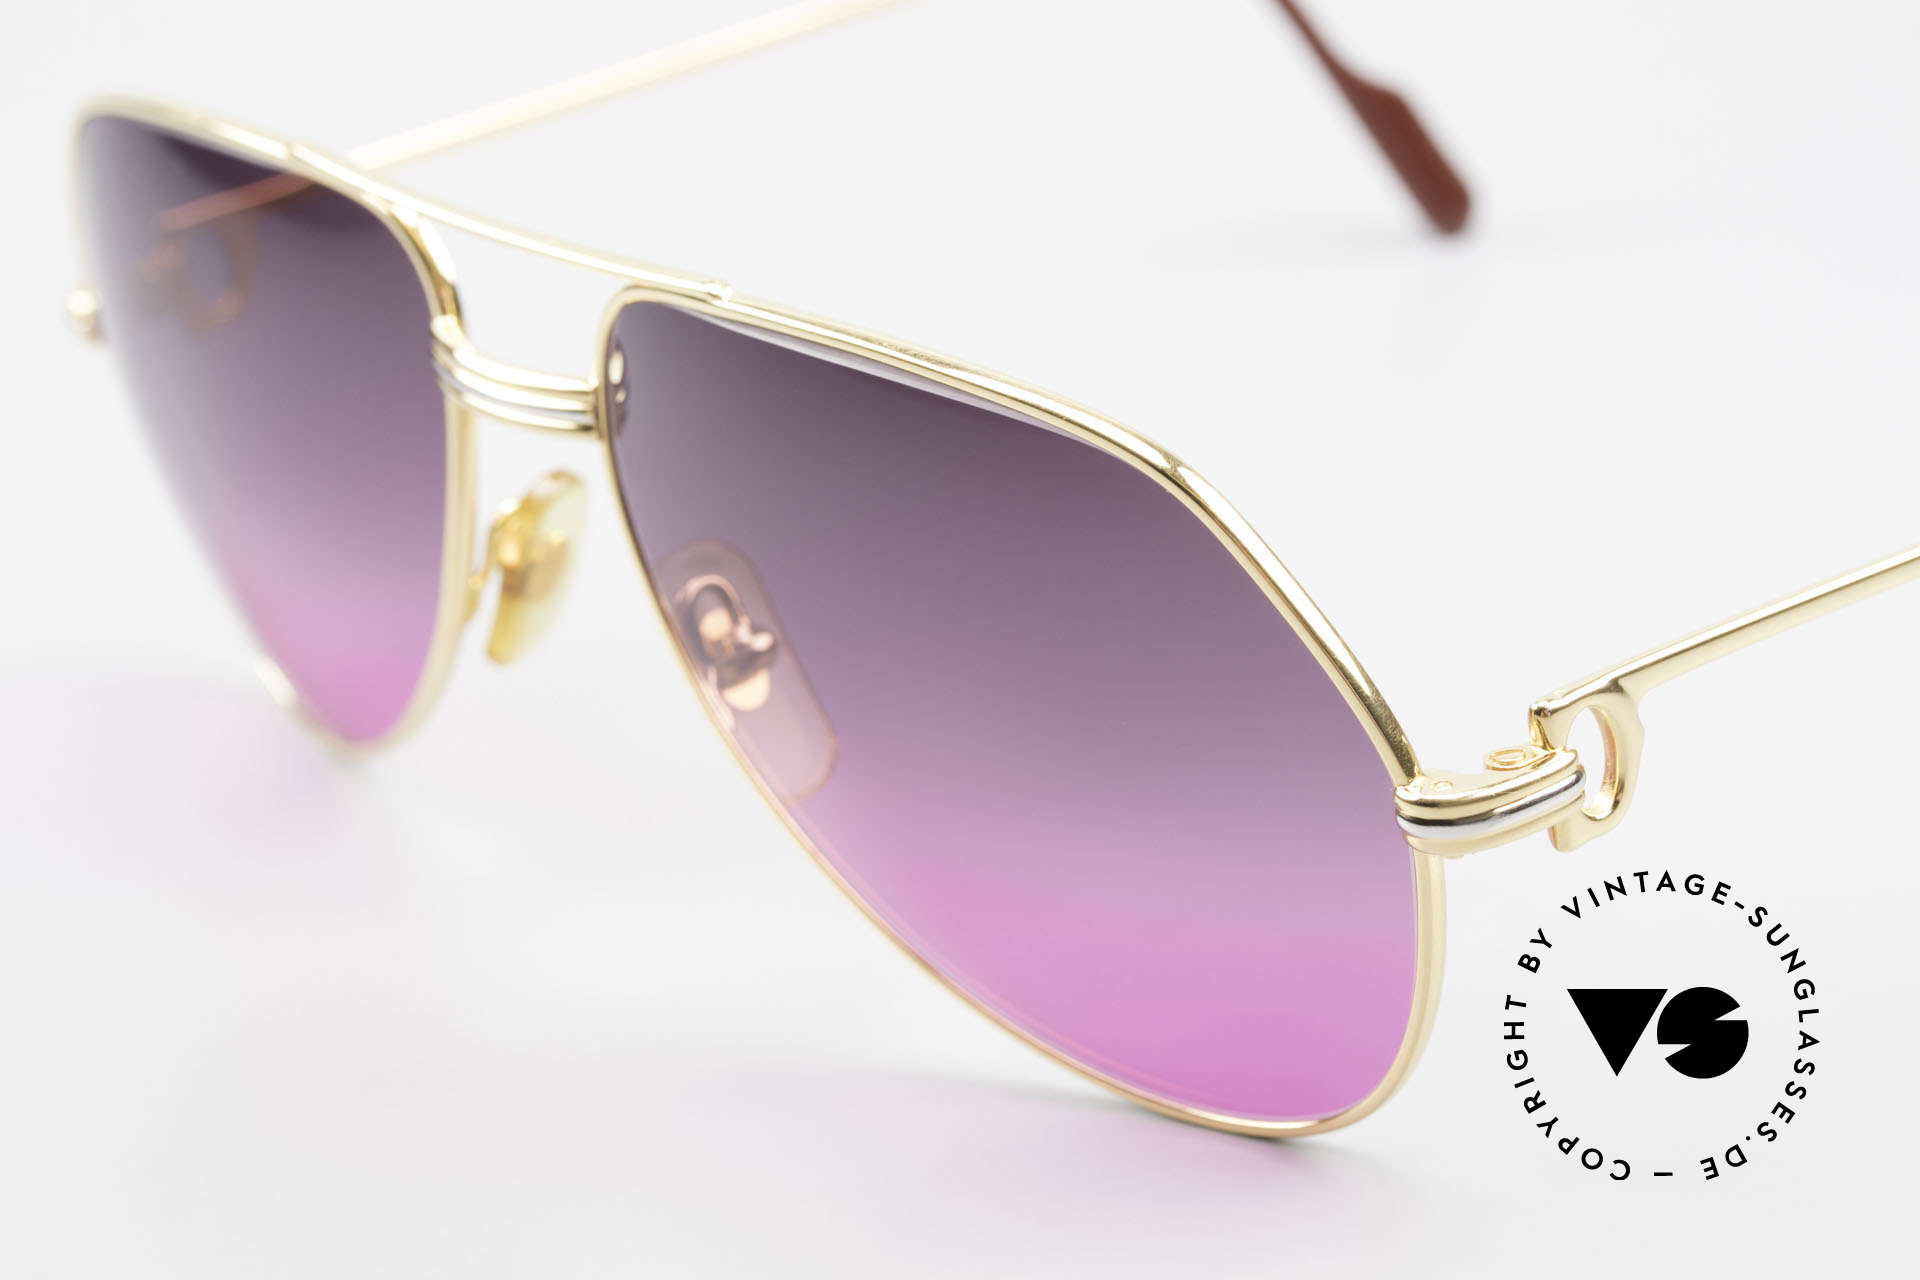 Cartier Vendome LC - M 80's Sunglasses Aviator Luxury, new fancy sun lenses with purple-pink gradient; 100% UV, Made for Men and Women